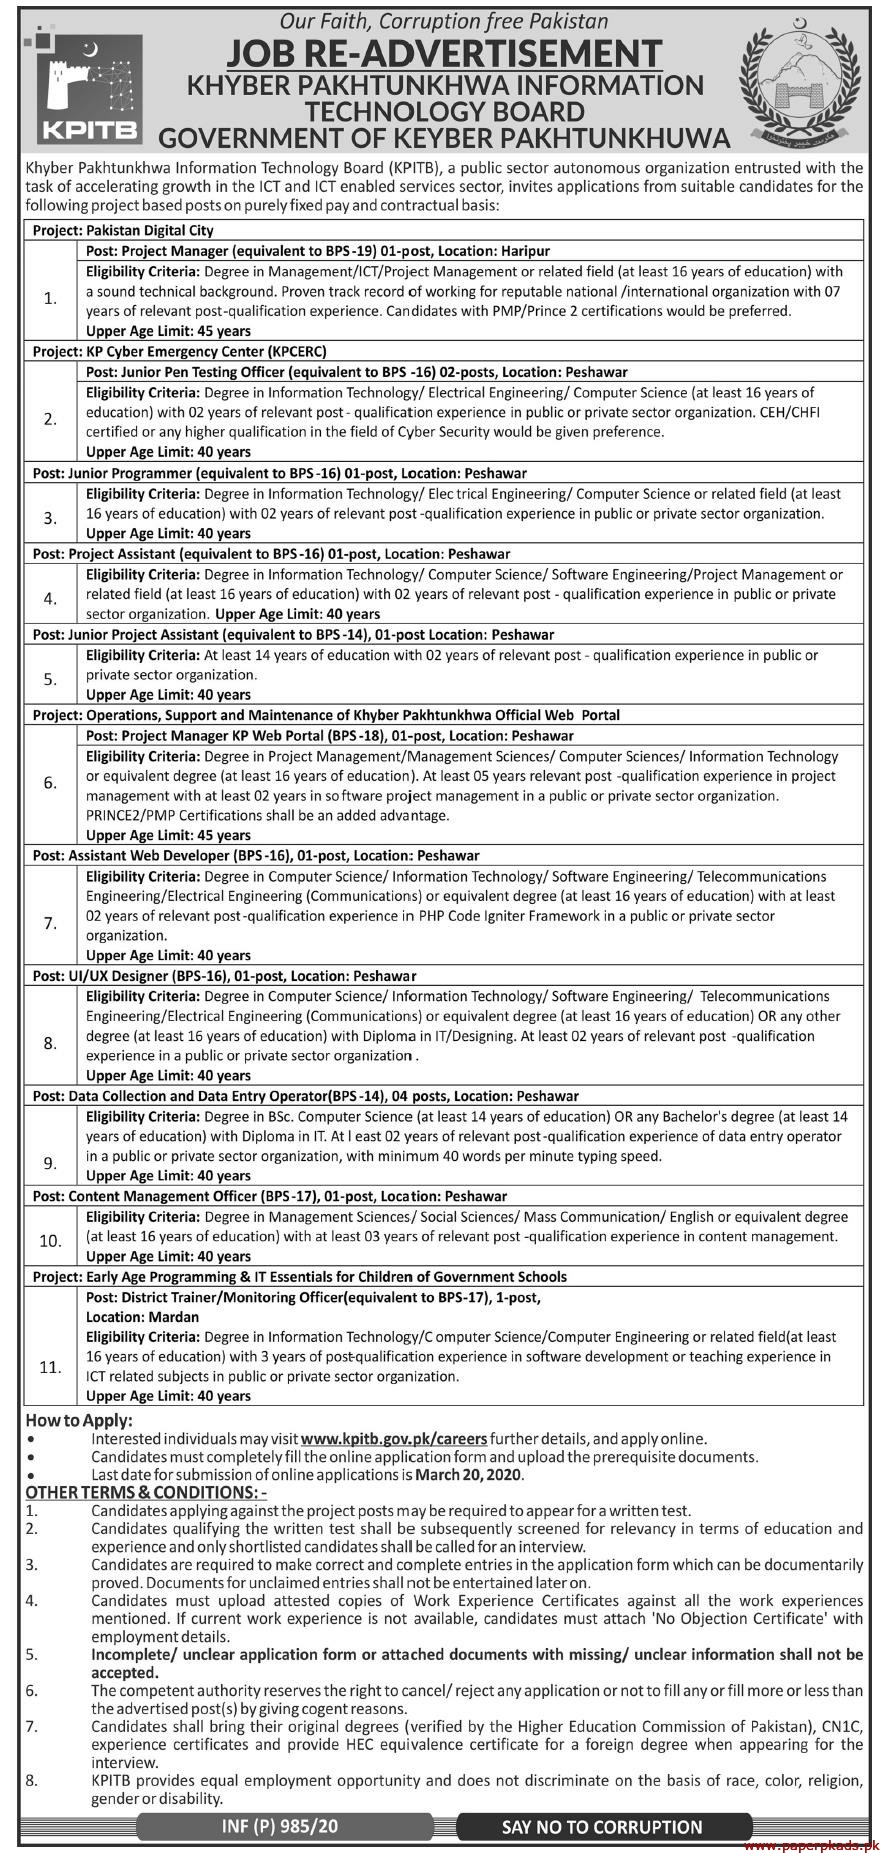 Khyber Pakhtunkhwa Information Technology Board KPITB Jobs 2020 Latest